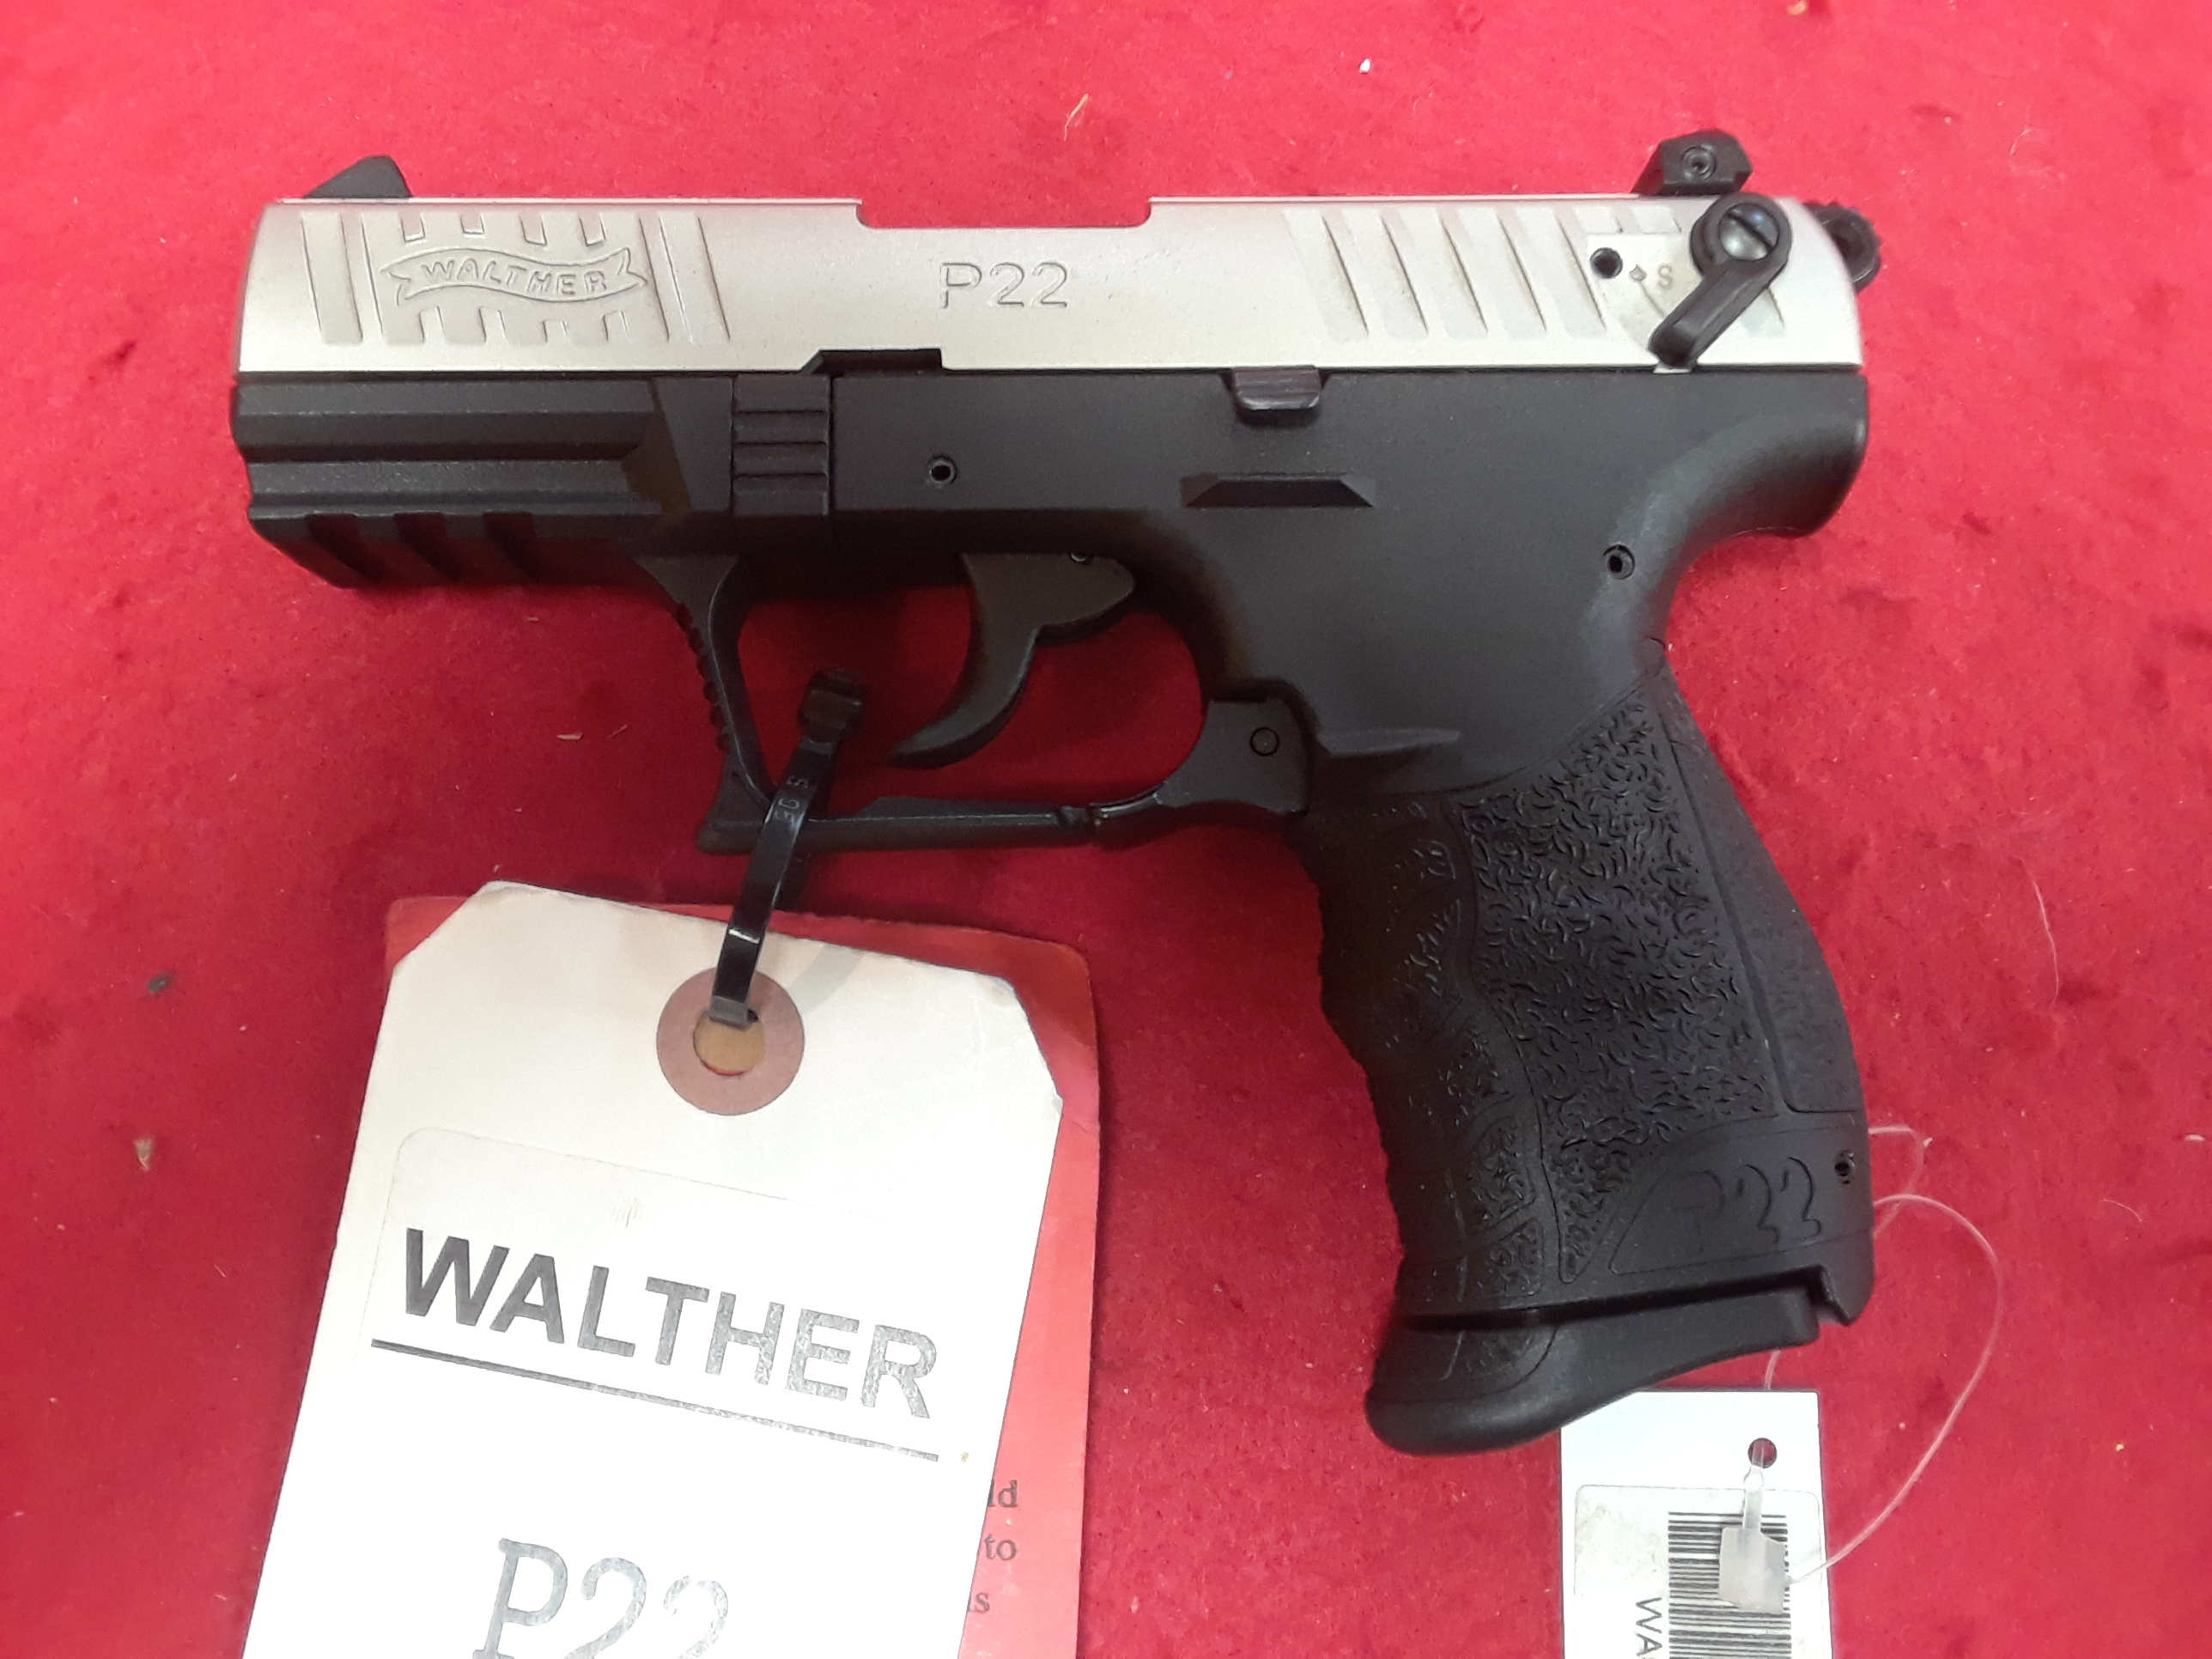 WALTHER P22-img-1